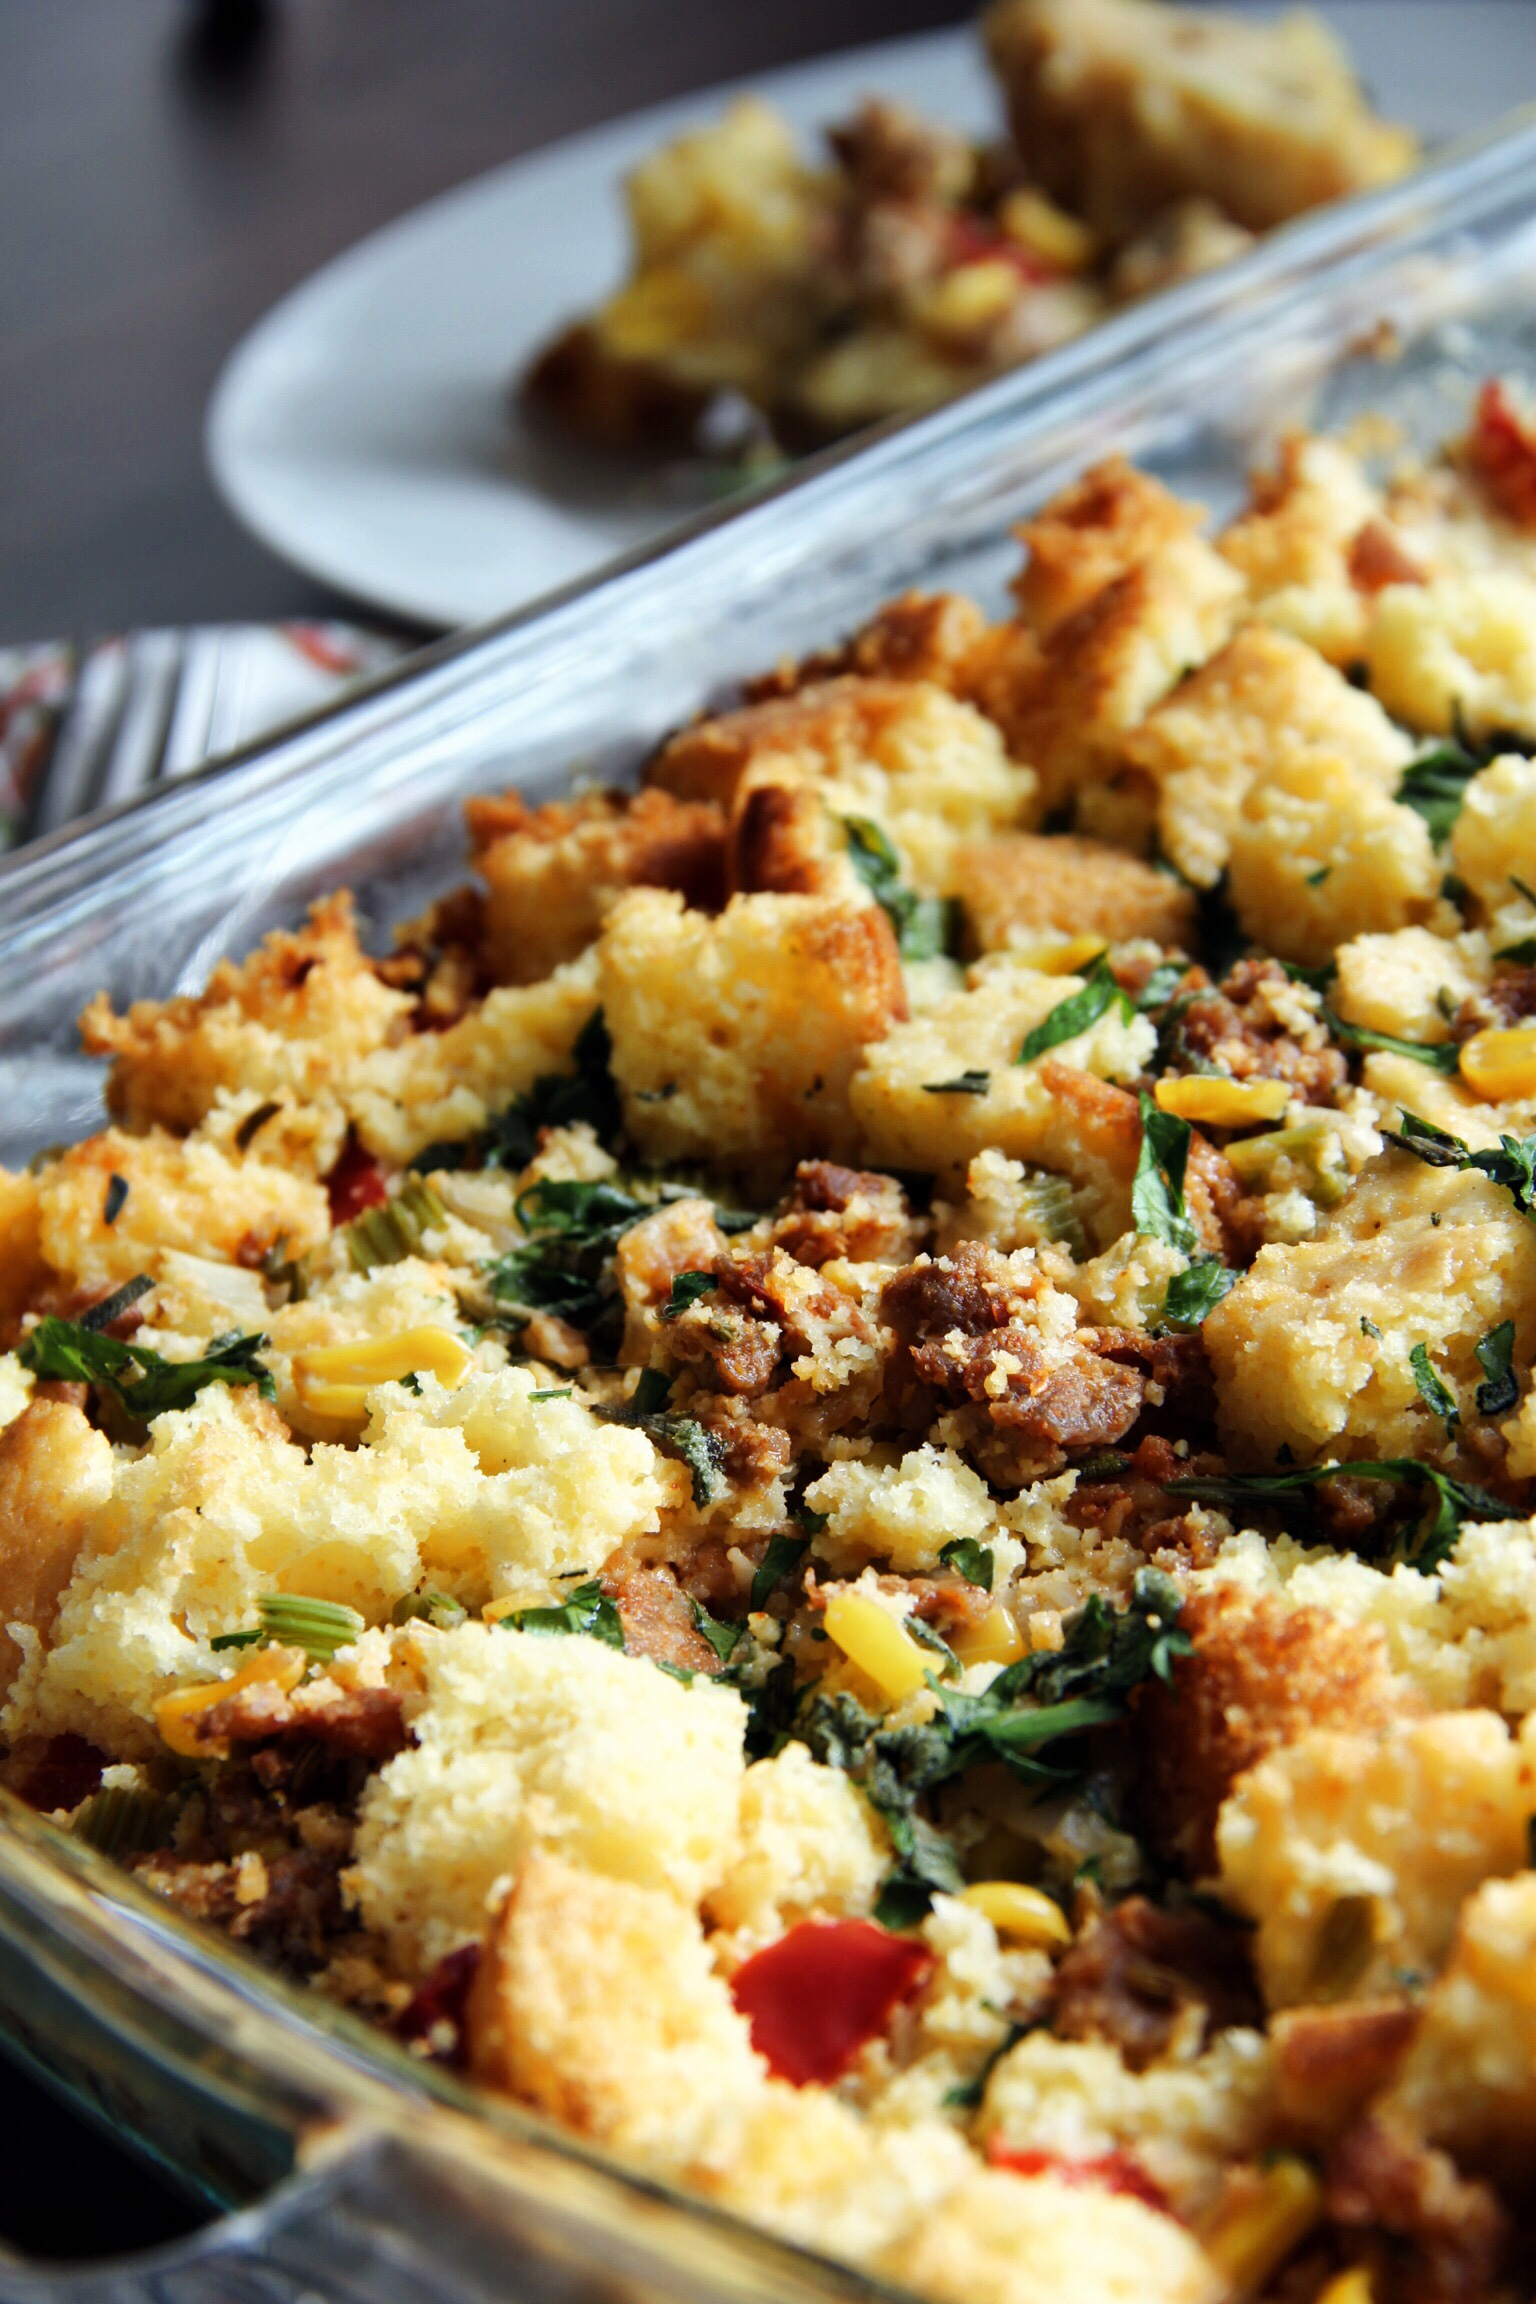 Cornbread stuffing with sausage - The Pastiche